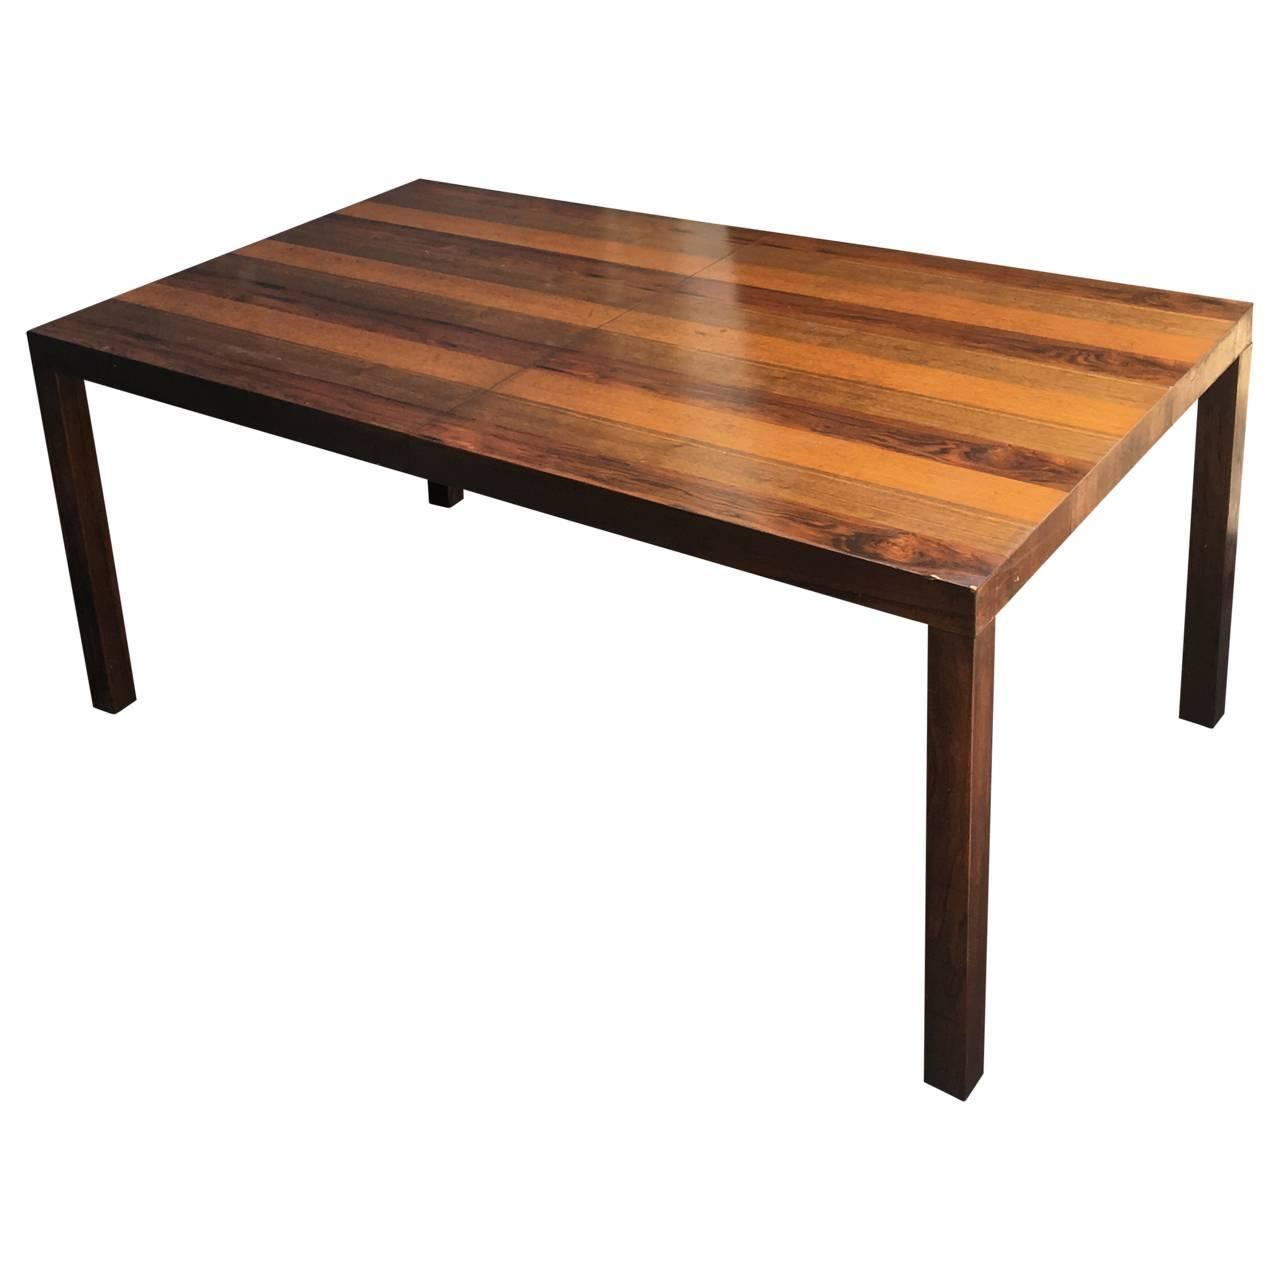 Mid century modern dining table for sale at 1stdibs for Modern dining tables sale